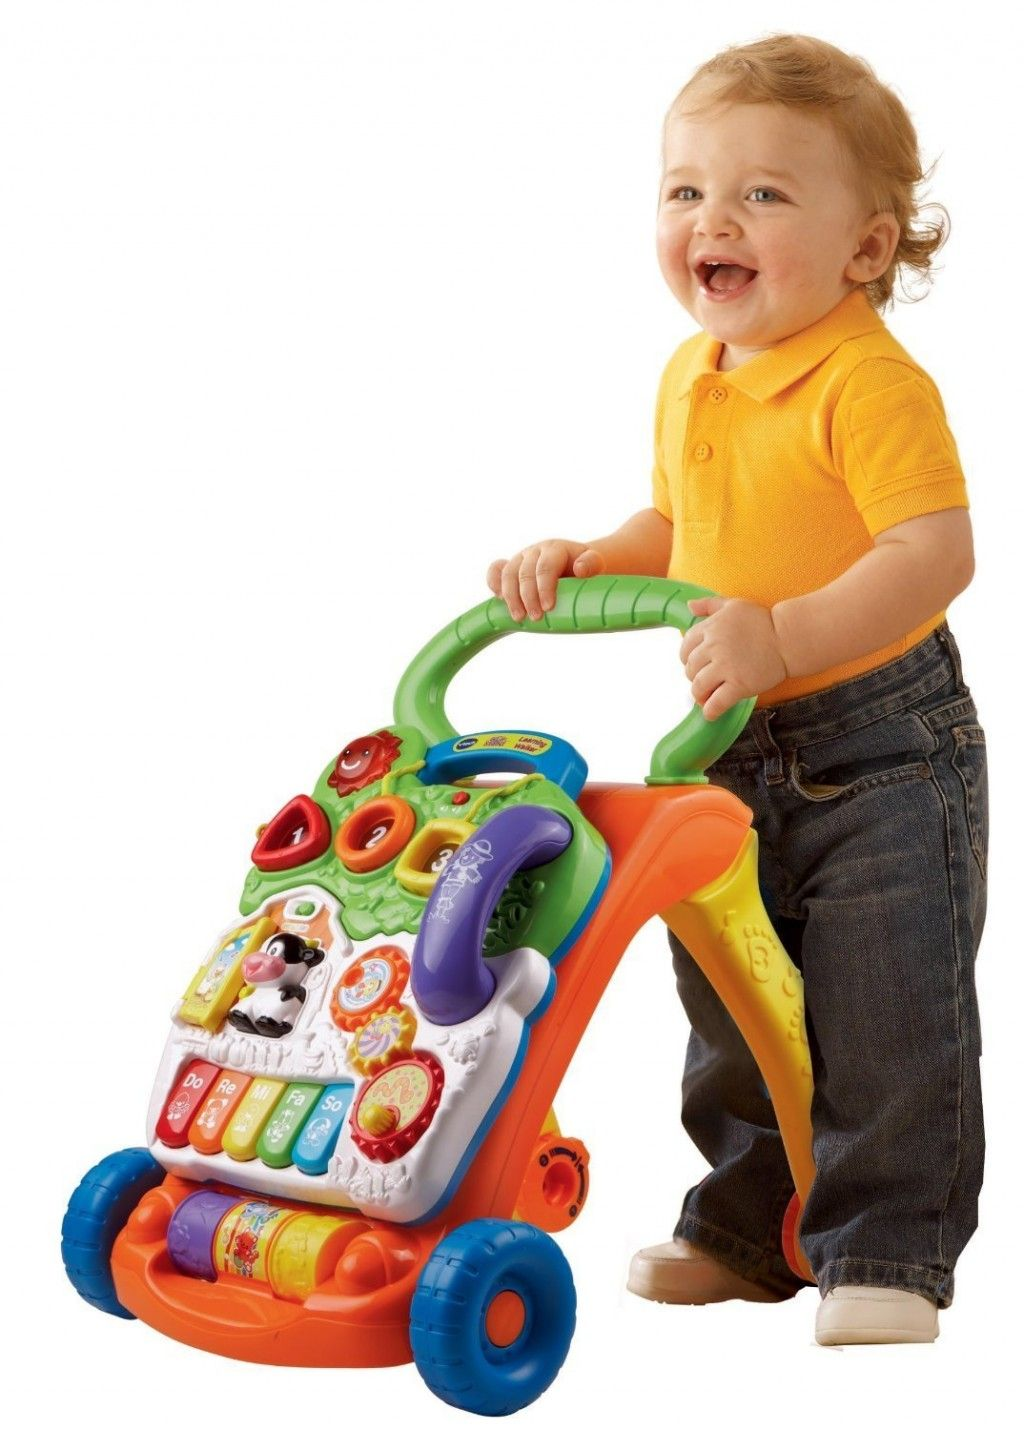 Four Top Toys For 9 Month Old Babies (With images) | Sit ...